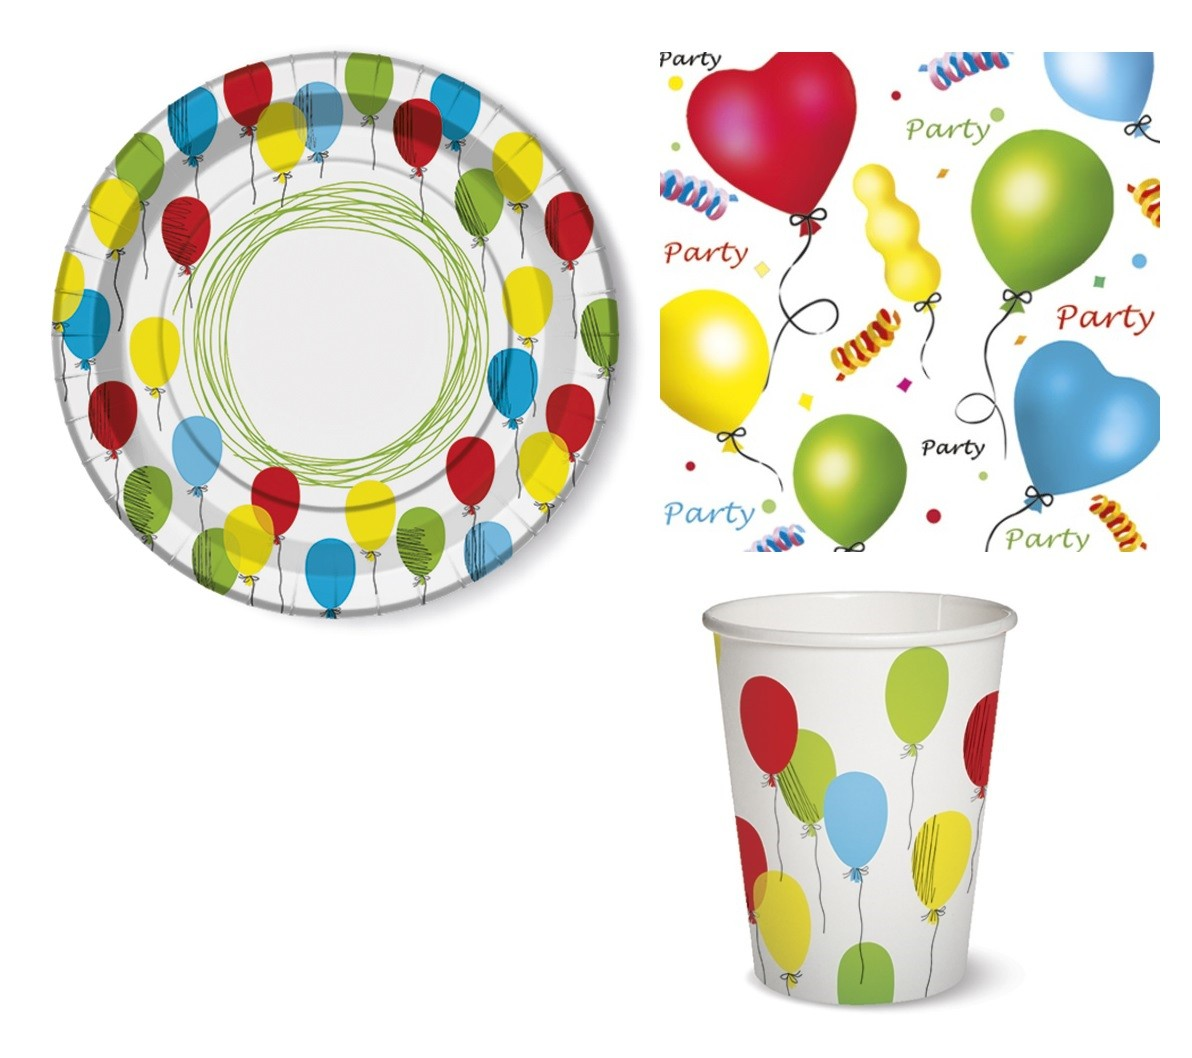 Party Tischdeko Tischdeko Set Party Ballons Teller Becher Servietten